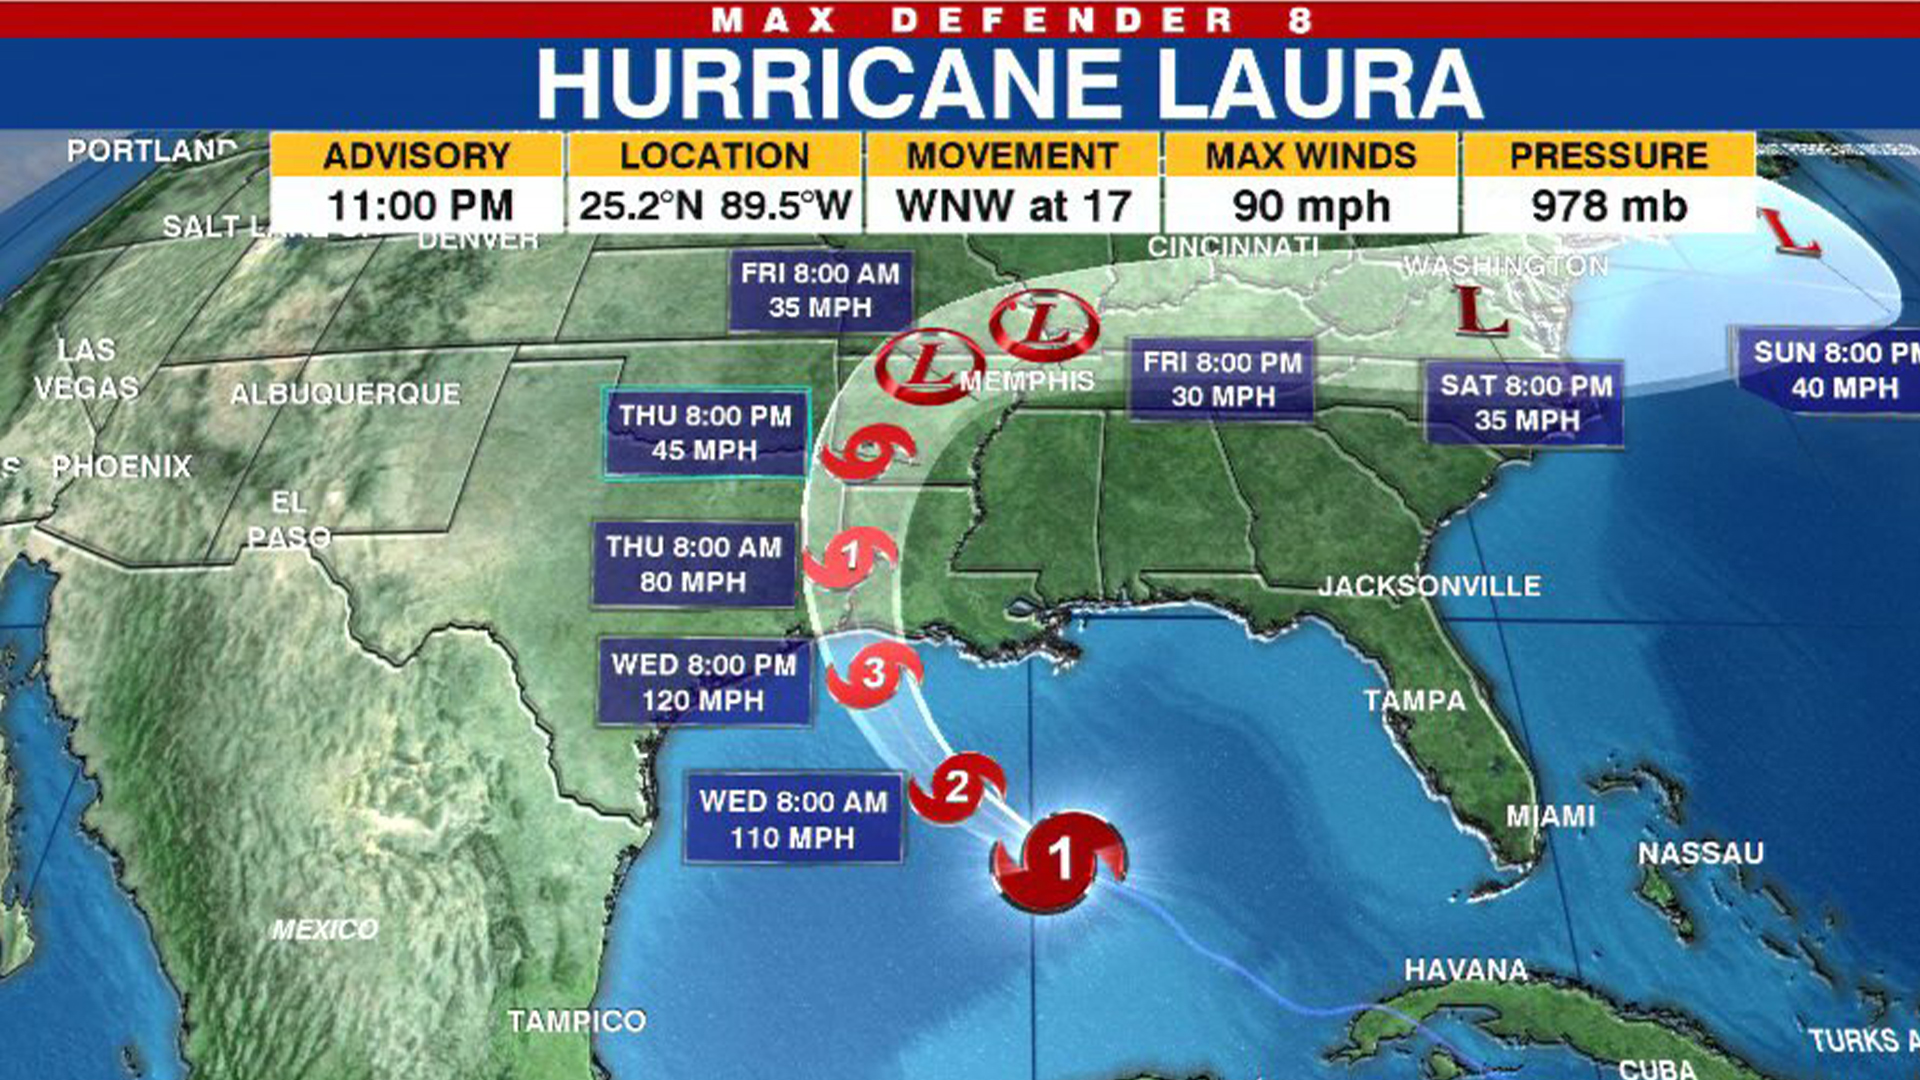 Tracking The Tropics Laura Strengthening Forecast To Make Landfall As Major Hurricane Wpri Com